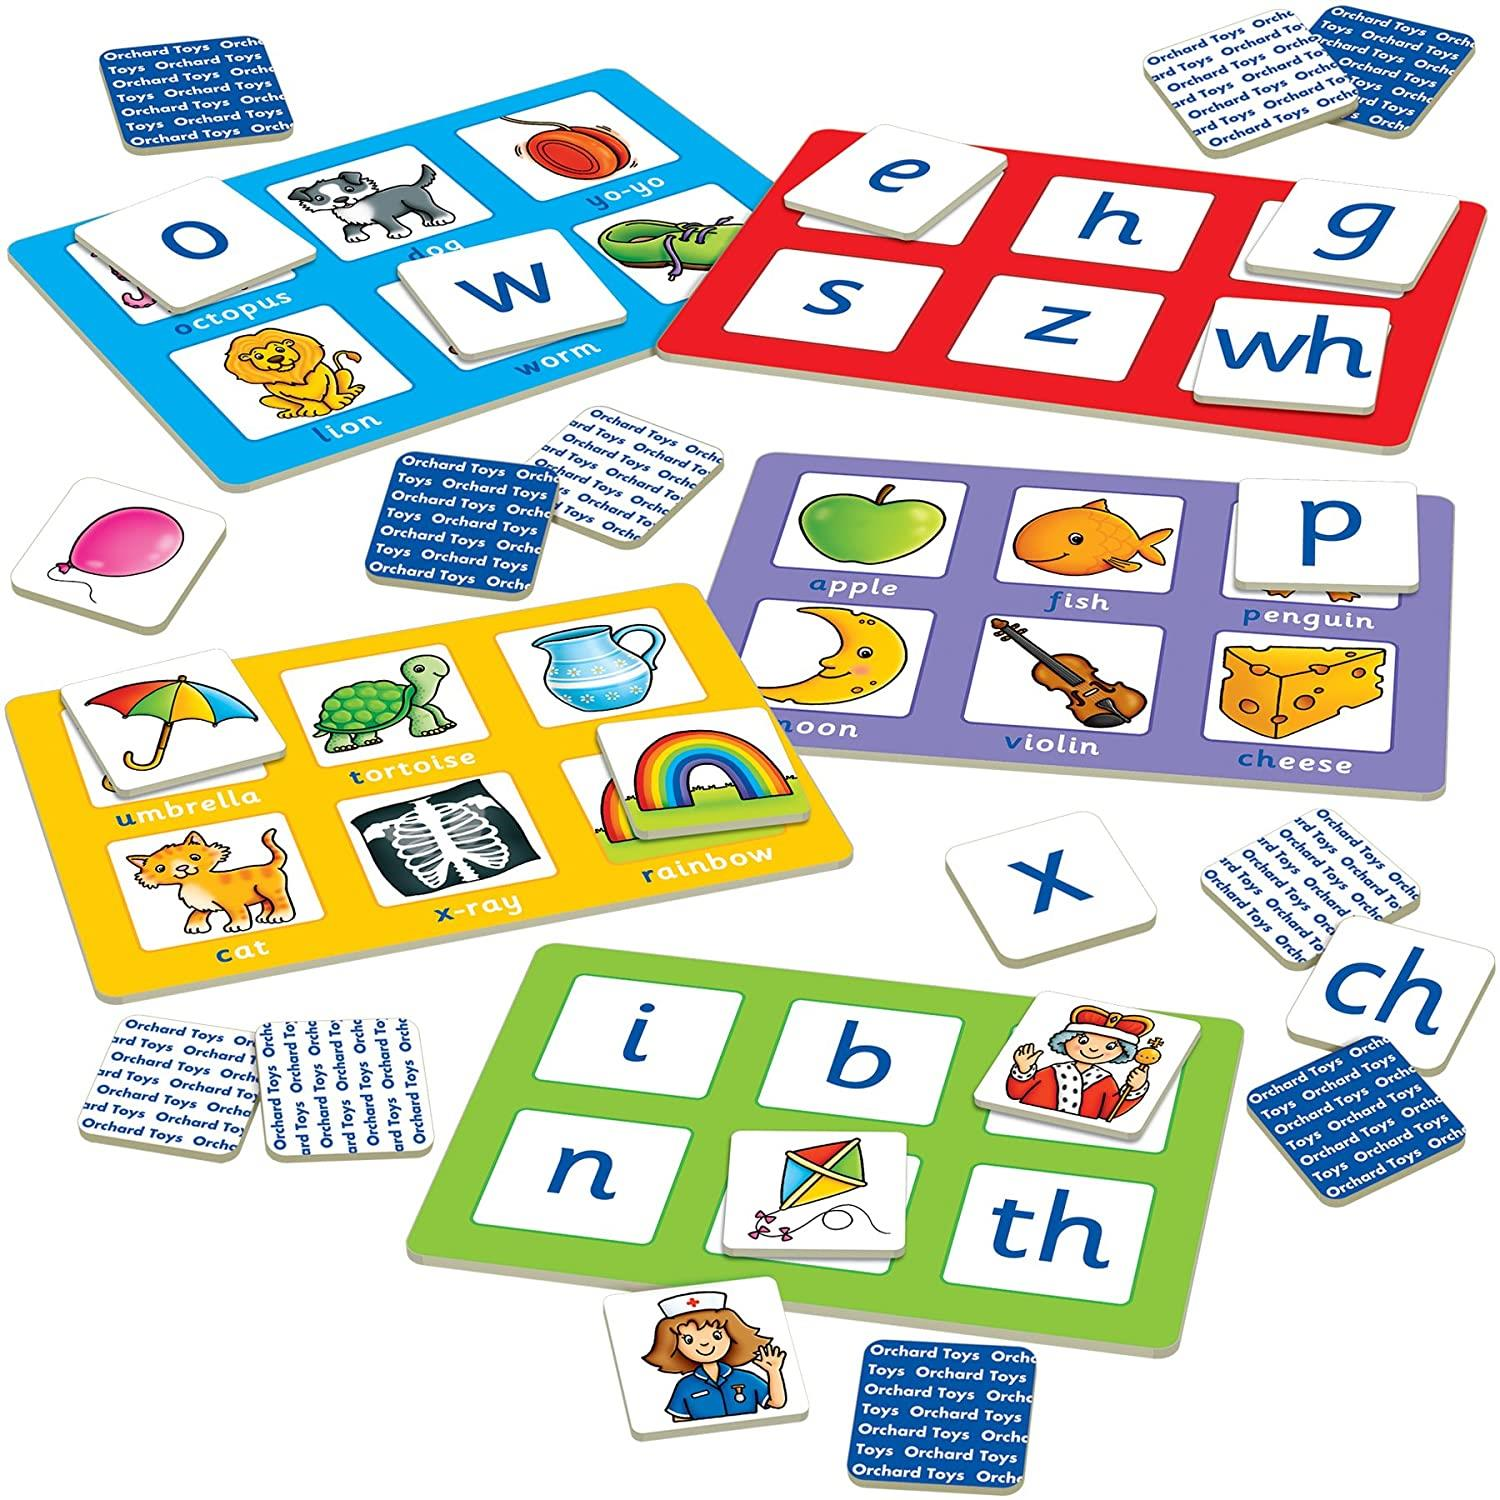 thumbnail 18 - Orchard Toys Educational Games For Kids Choose Game From Drop Down Menu